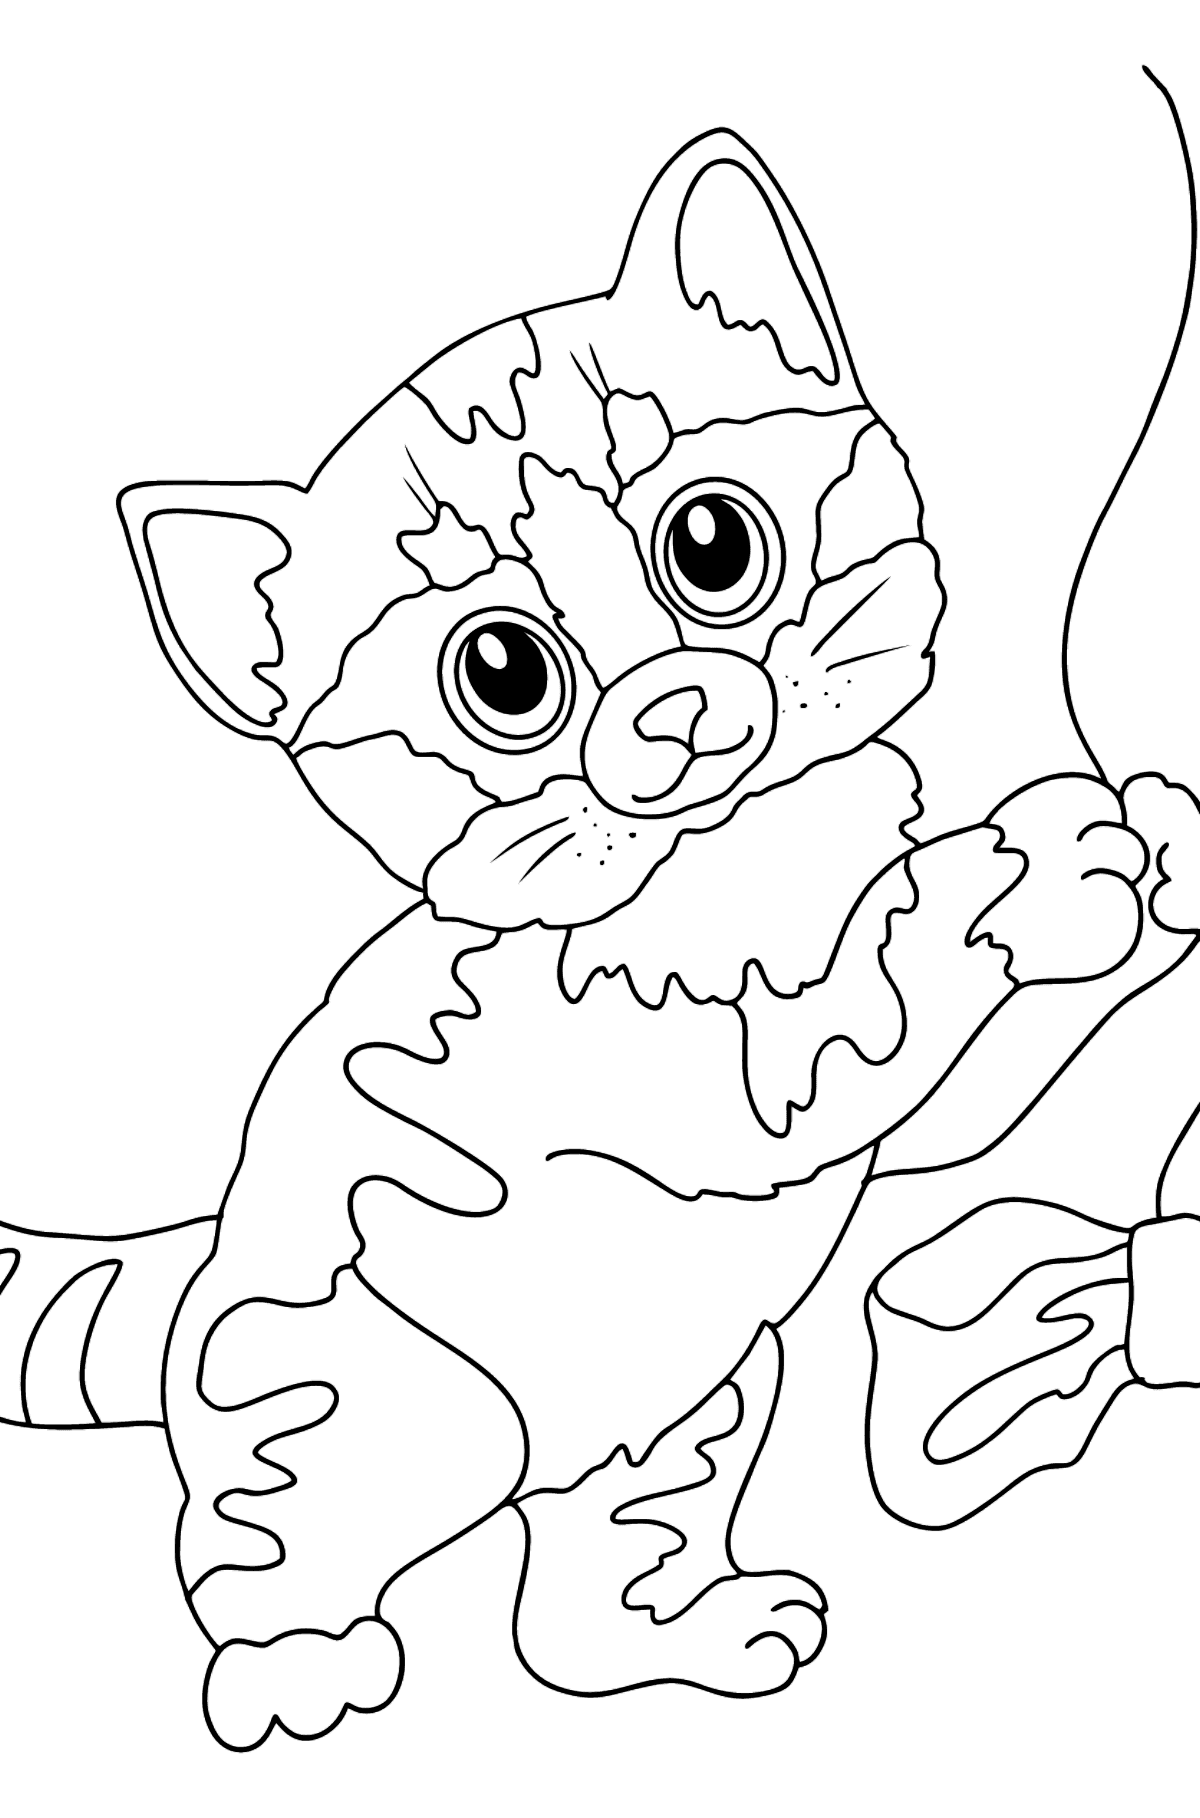 Coloring Page - A Cat is Playing with a Blue Bow - Coloring Pages for Kids